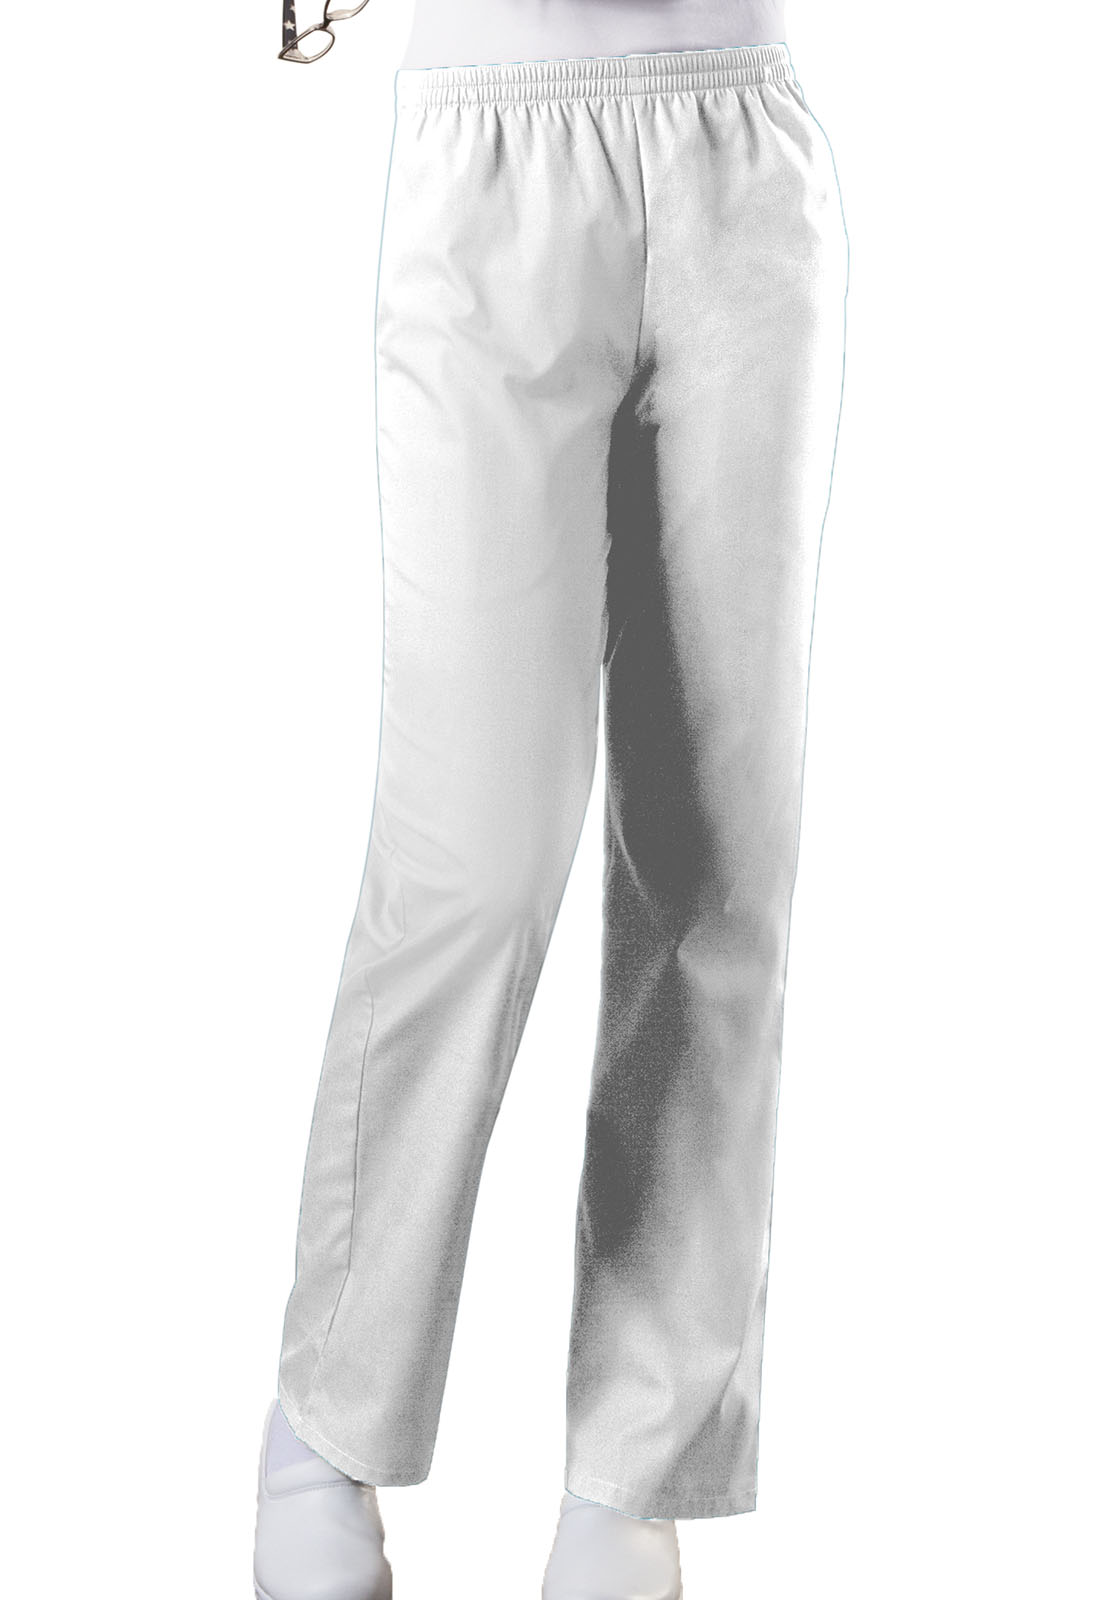 e9054f86bd6 WW Originals Natural Rise Tapered Leg Pull-On Pant 4001-WHTW from ...